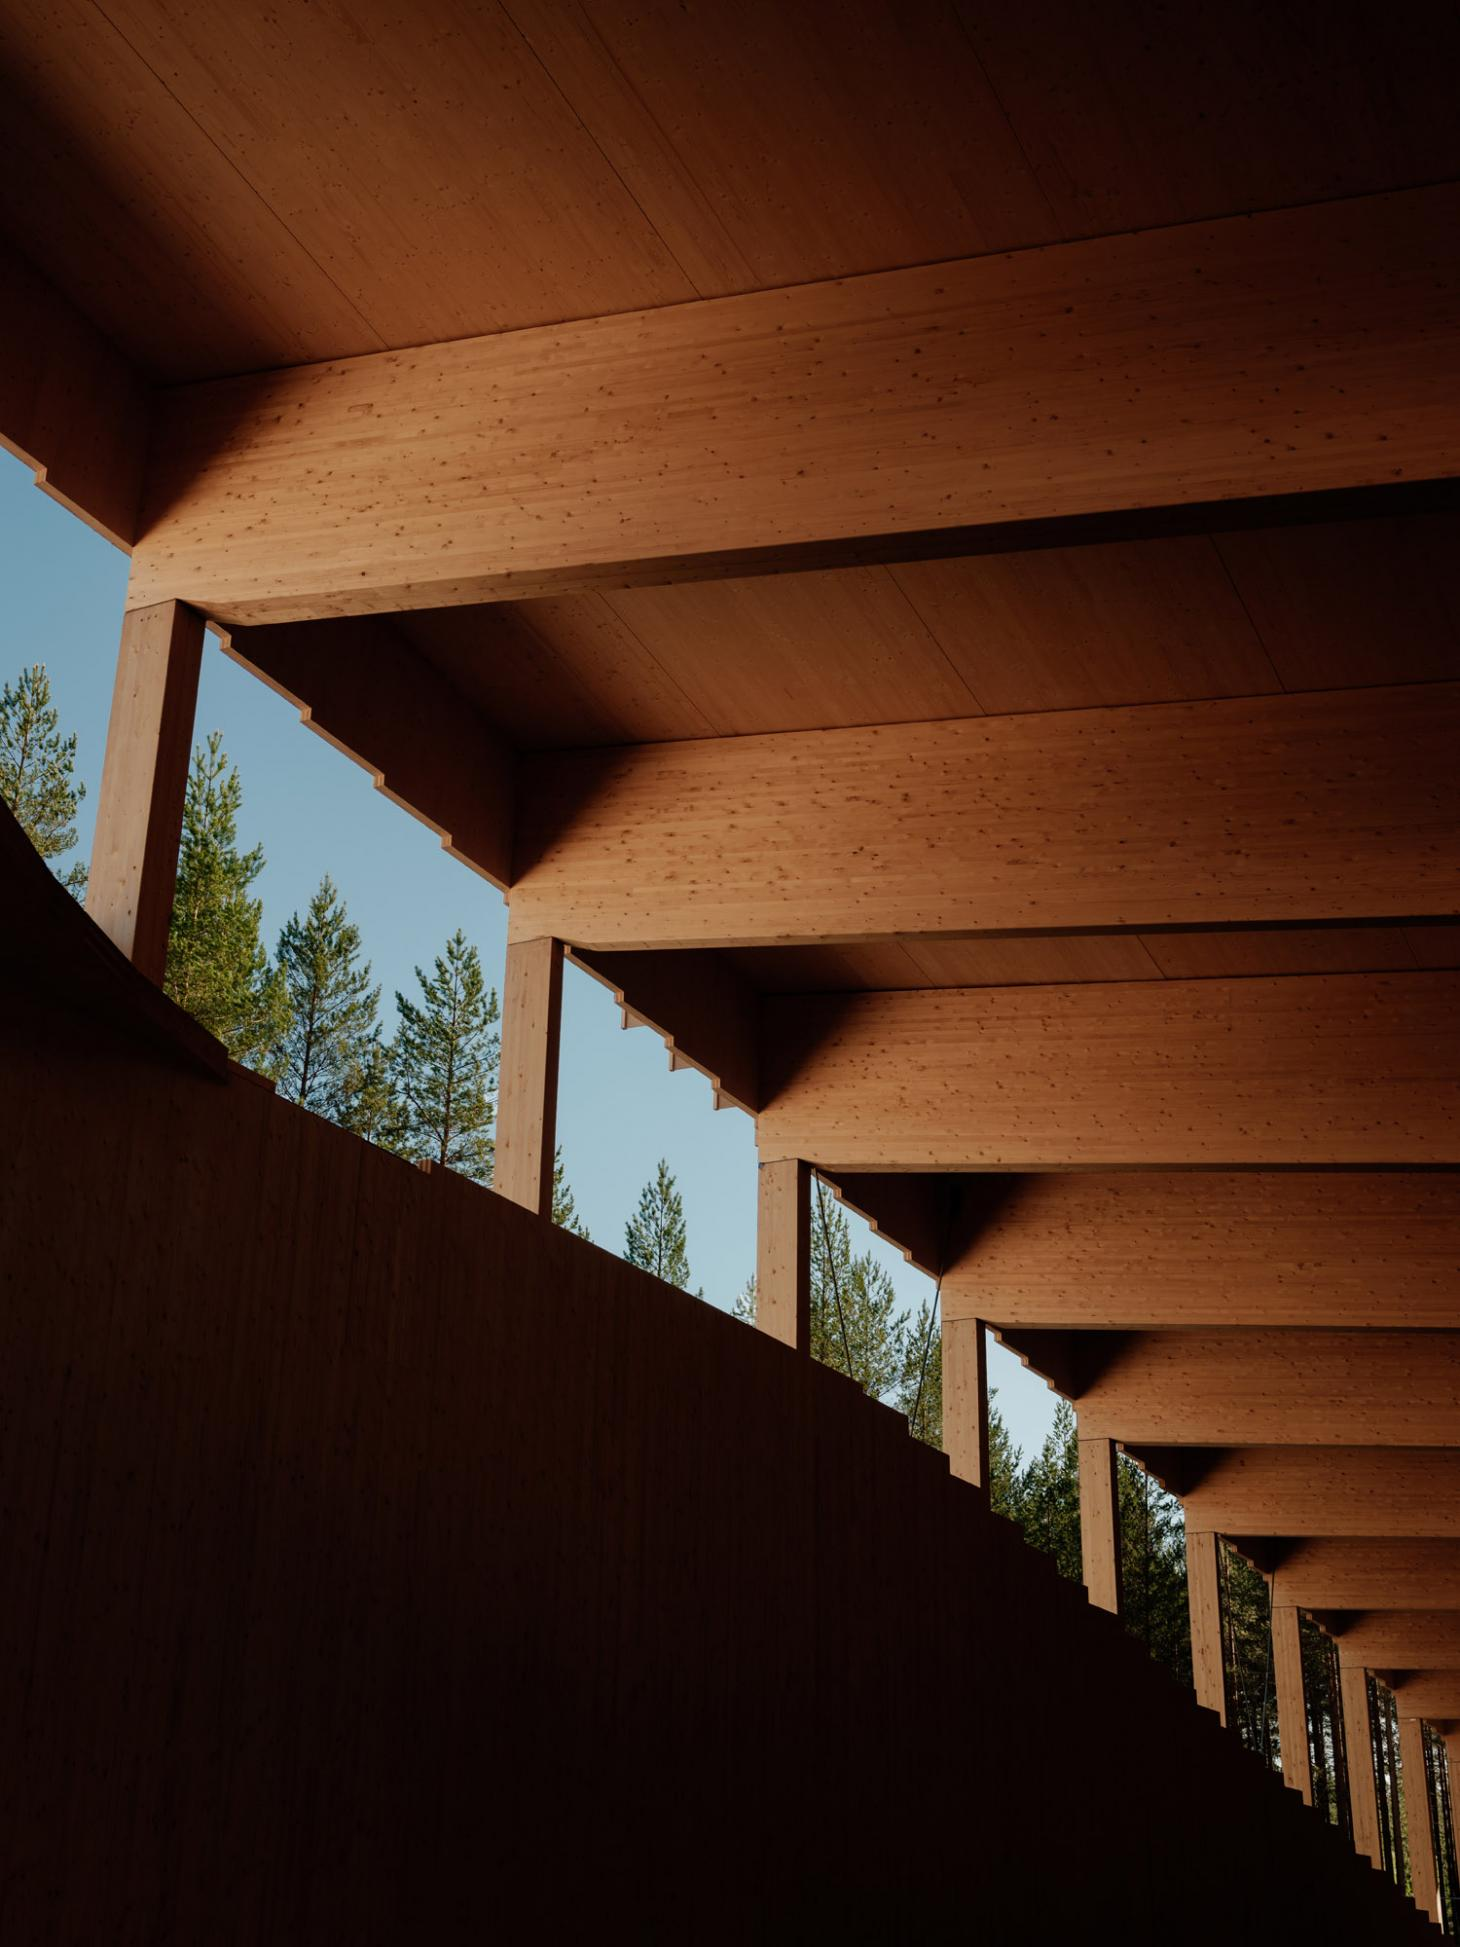 detail of the timber construction at The Plus